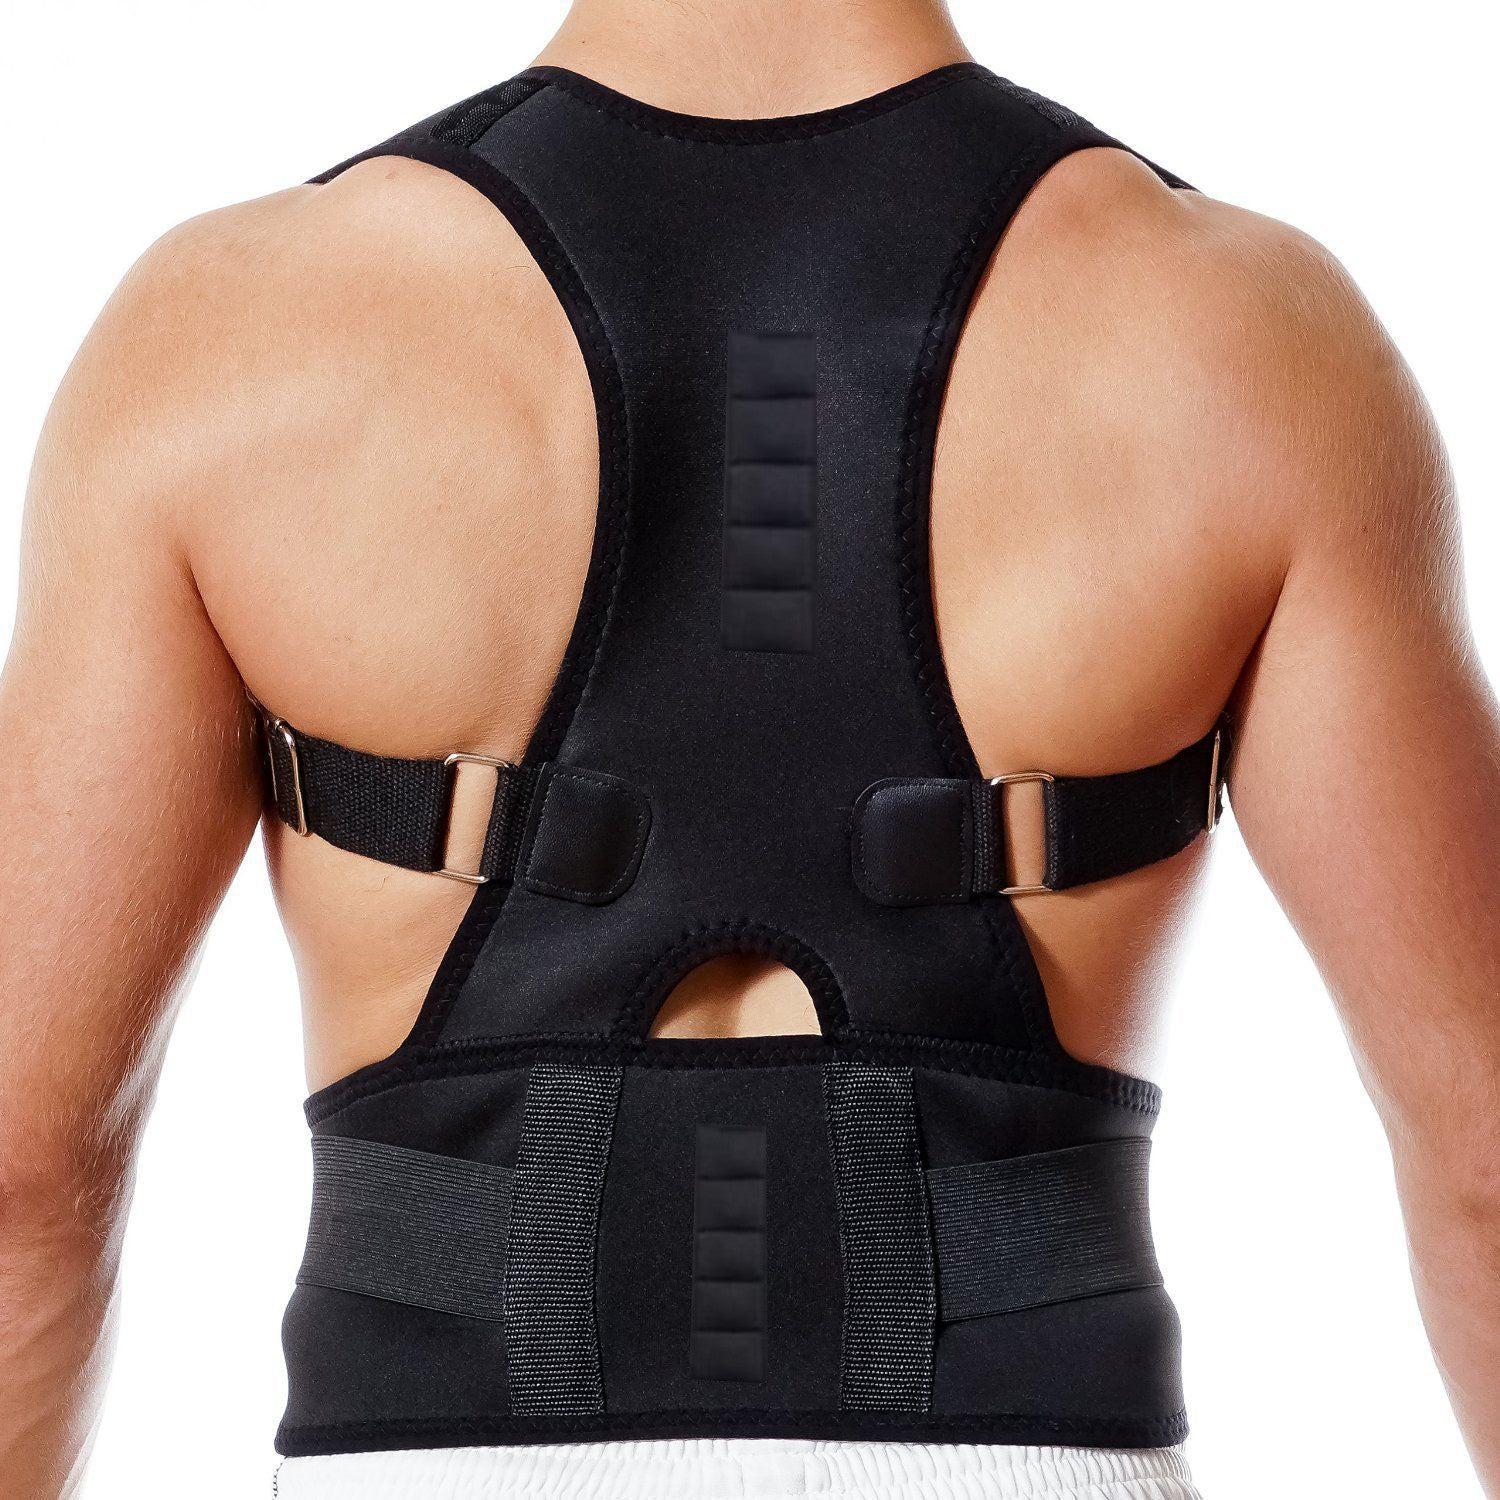 first main image Magnetic Posture Corrector for Lower and Upper Back Pain back view